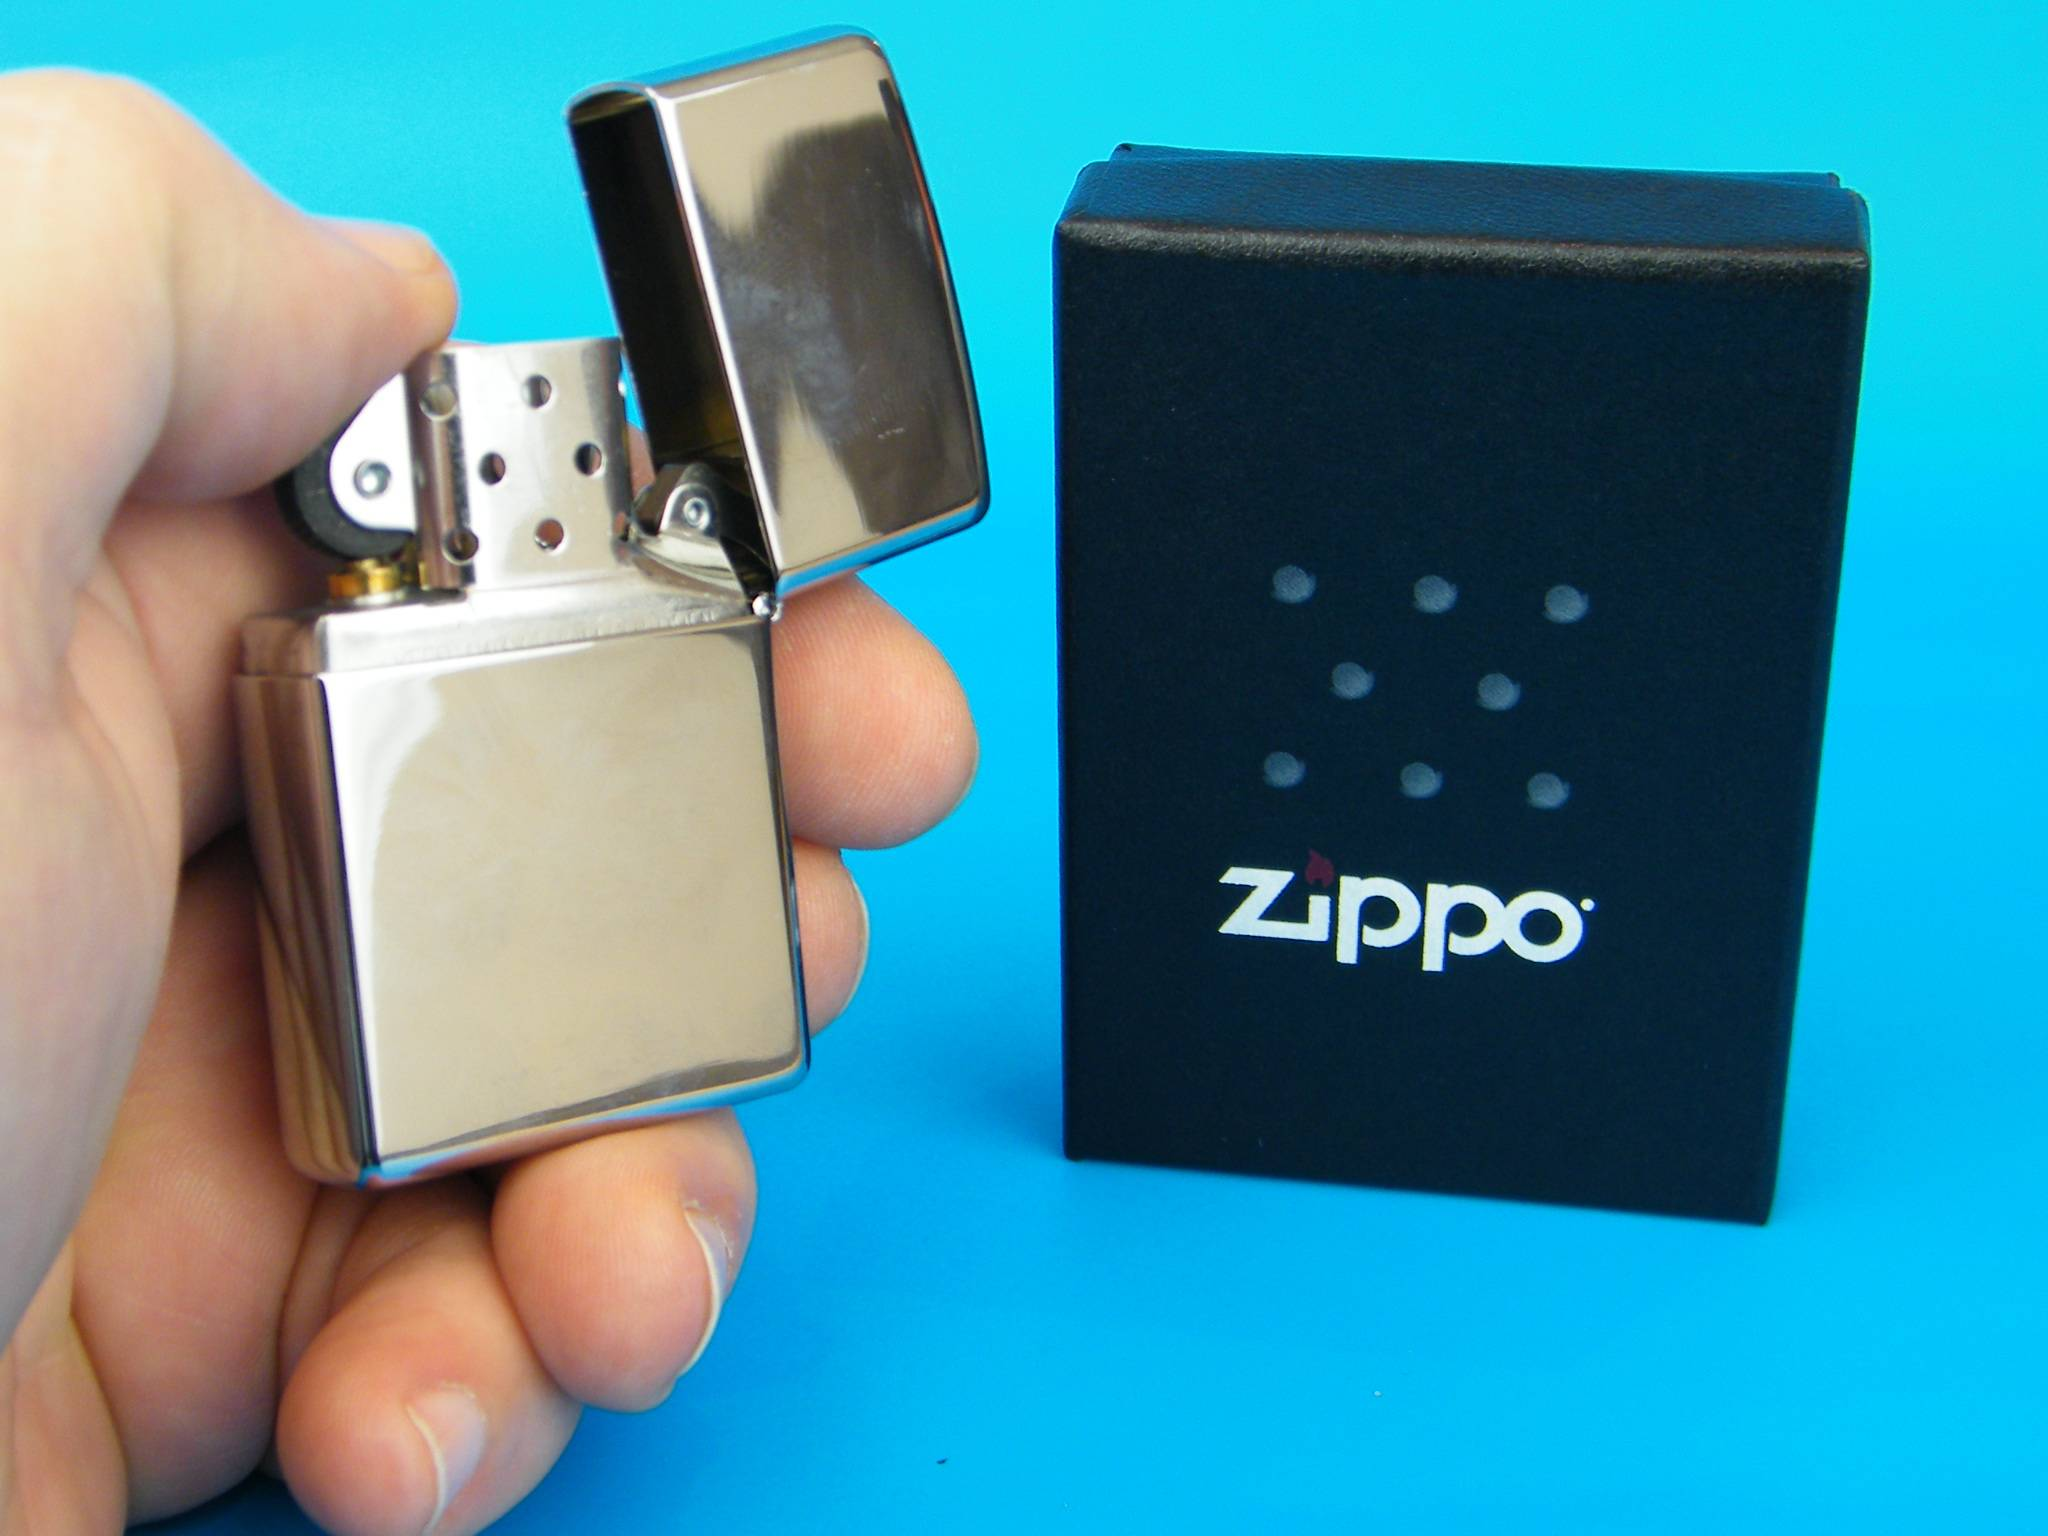 Free Full Hd Wallpapers Of 2015 Zippo Lighters